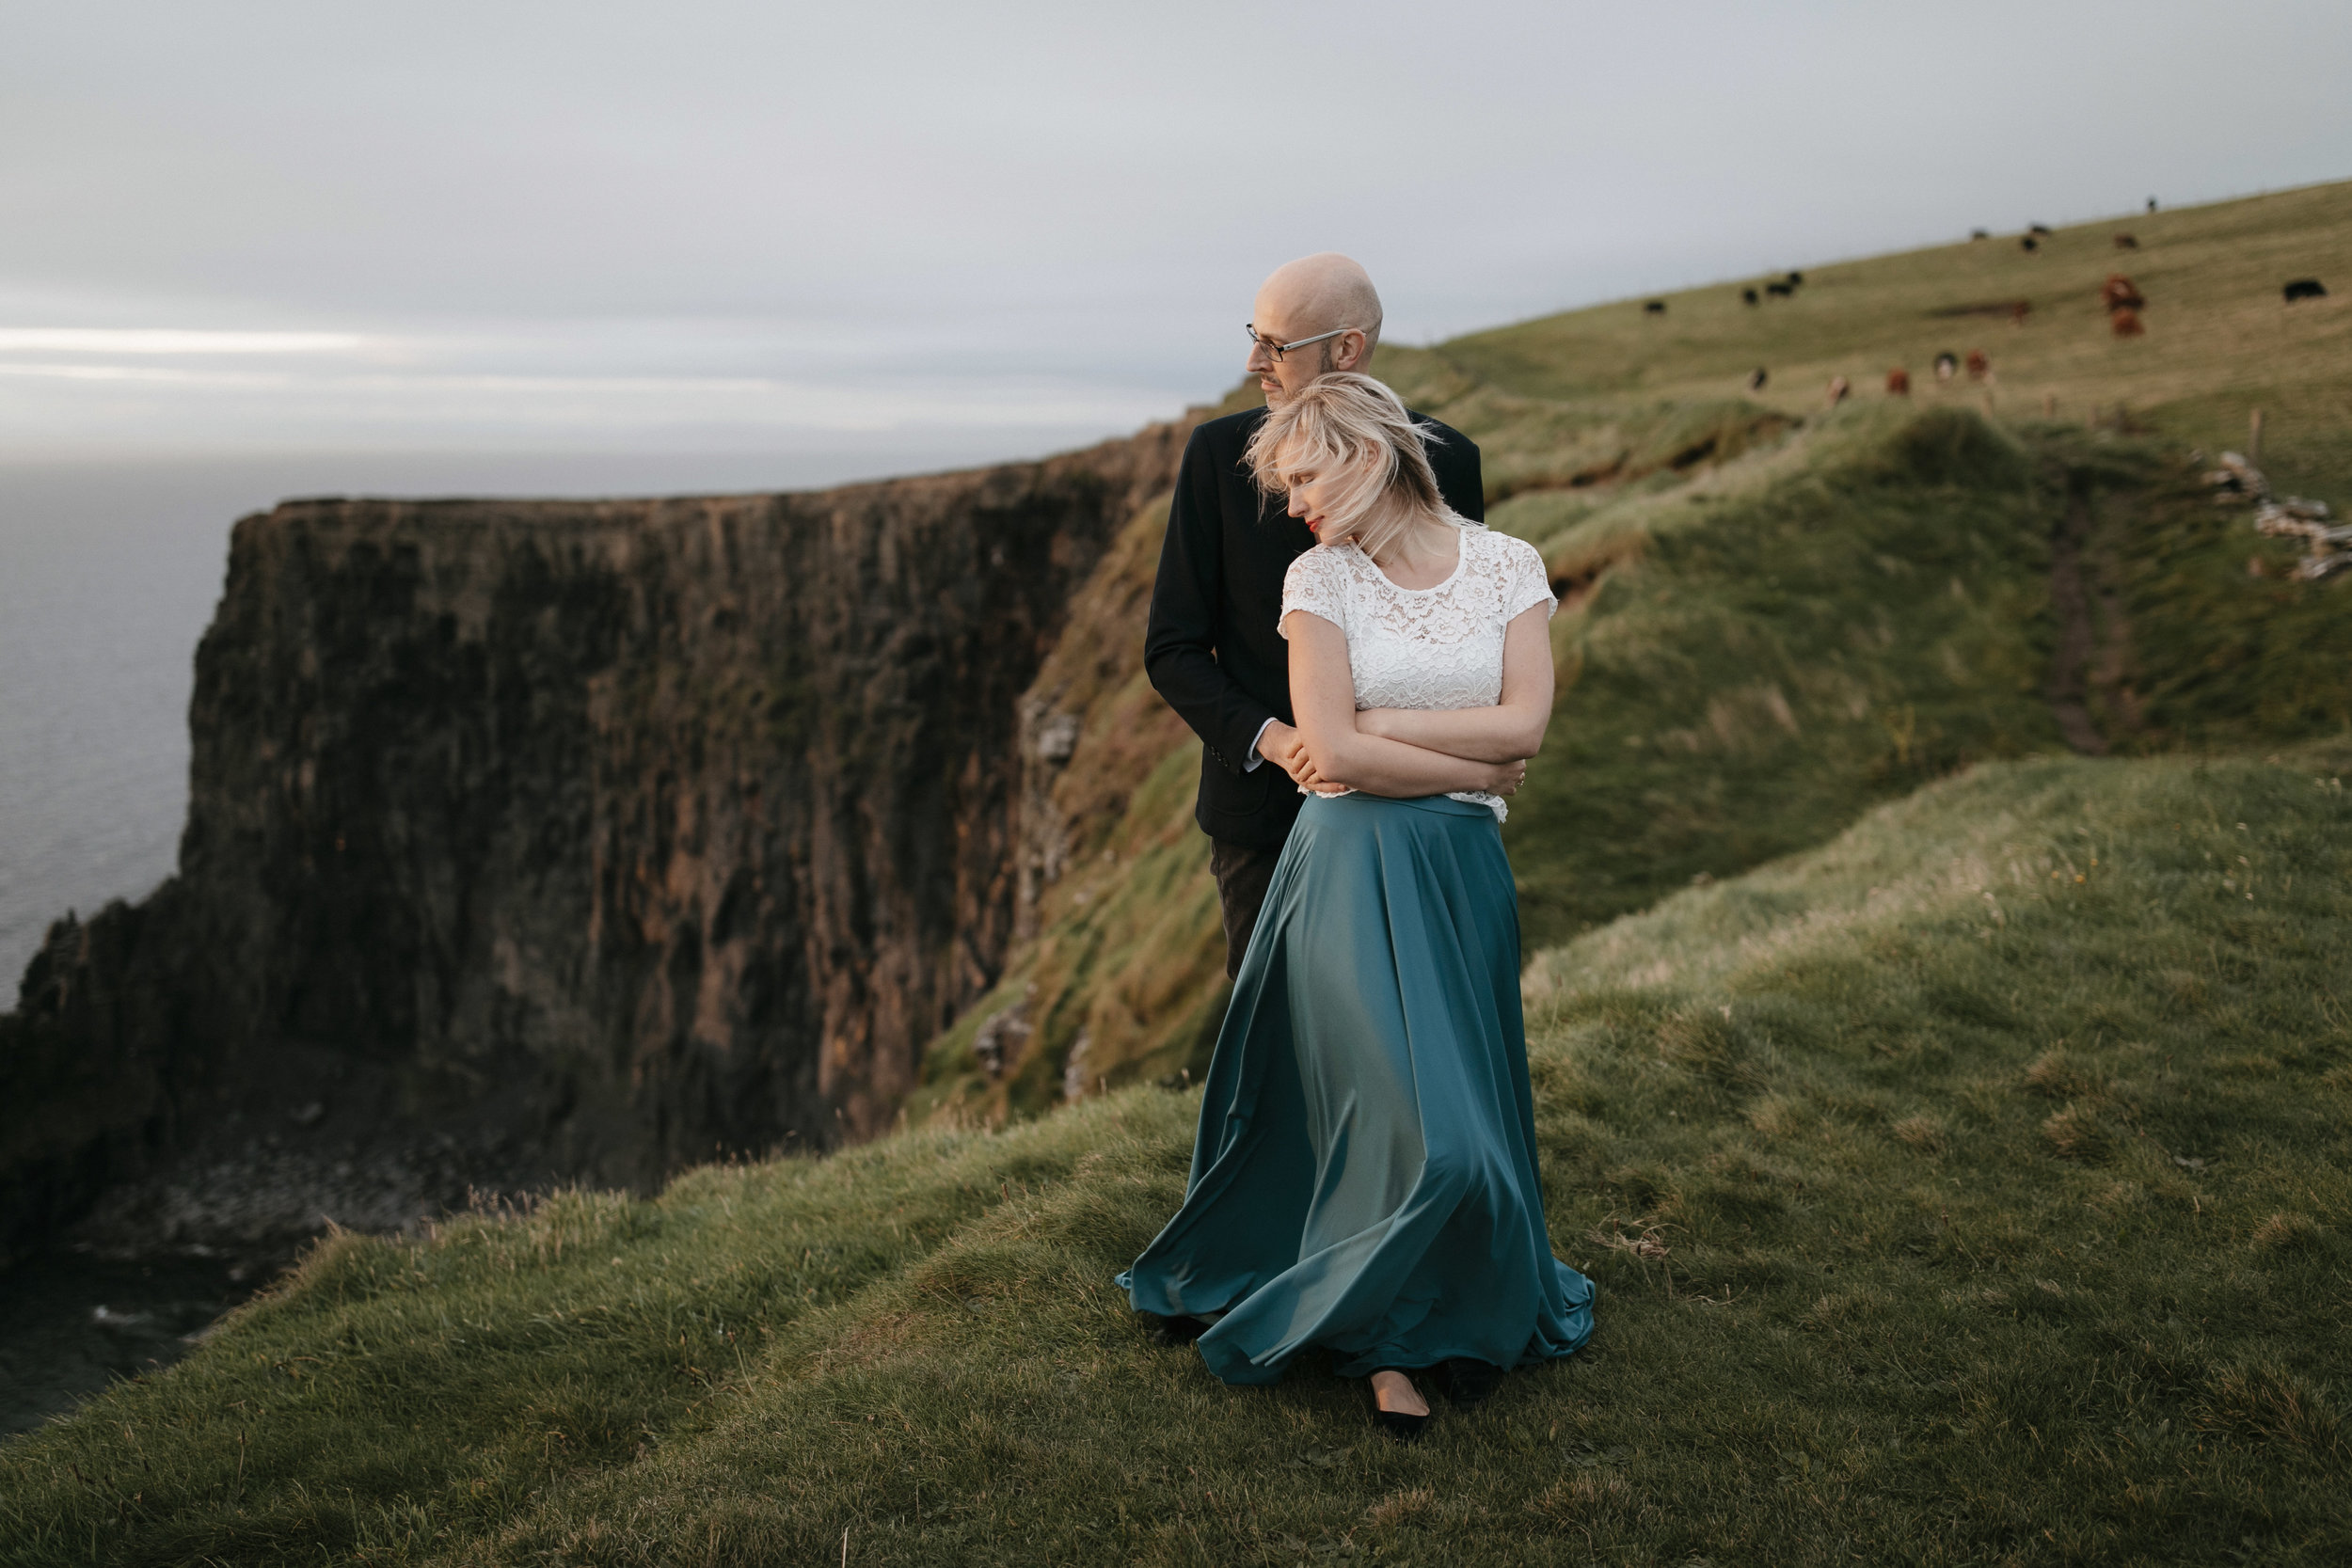 Romantic adventure engagement photography session at Cliffs of Moher by adventure elopement photographer colby and jess